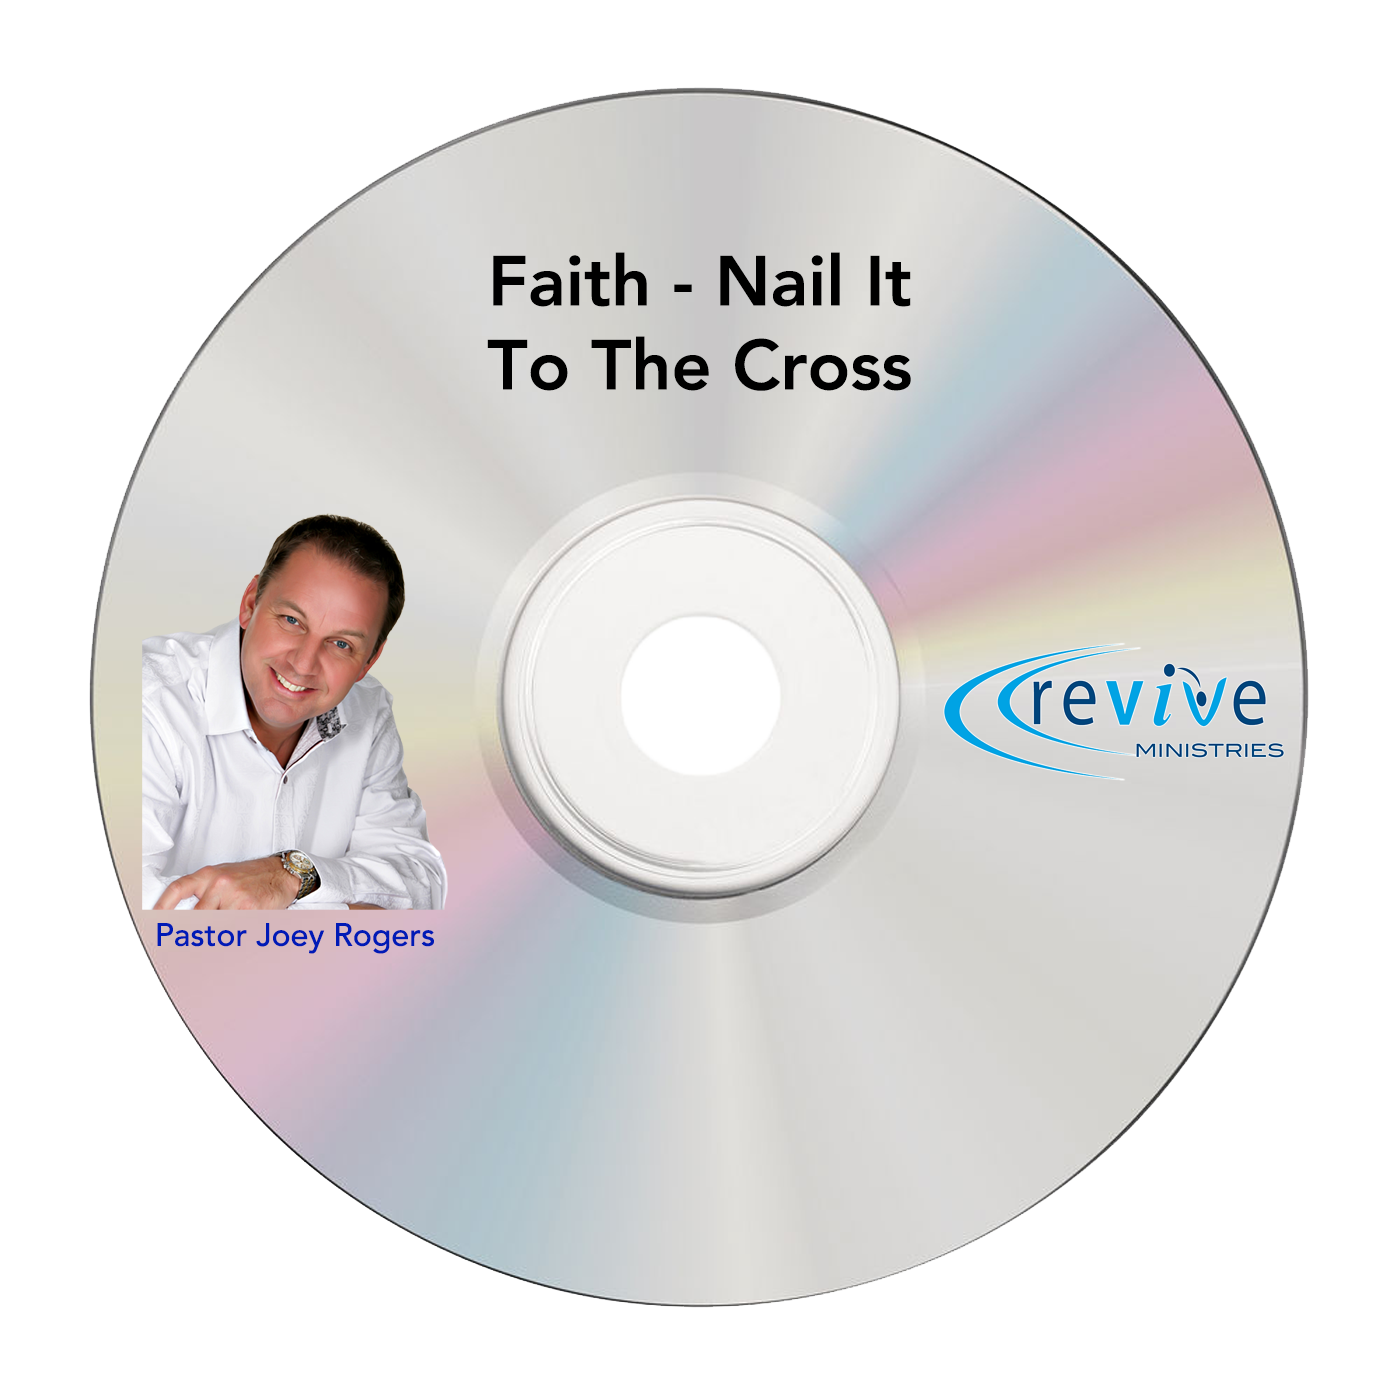 Faith - Nail it to the Cross